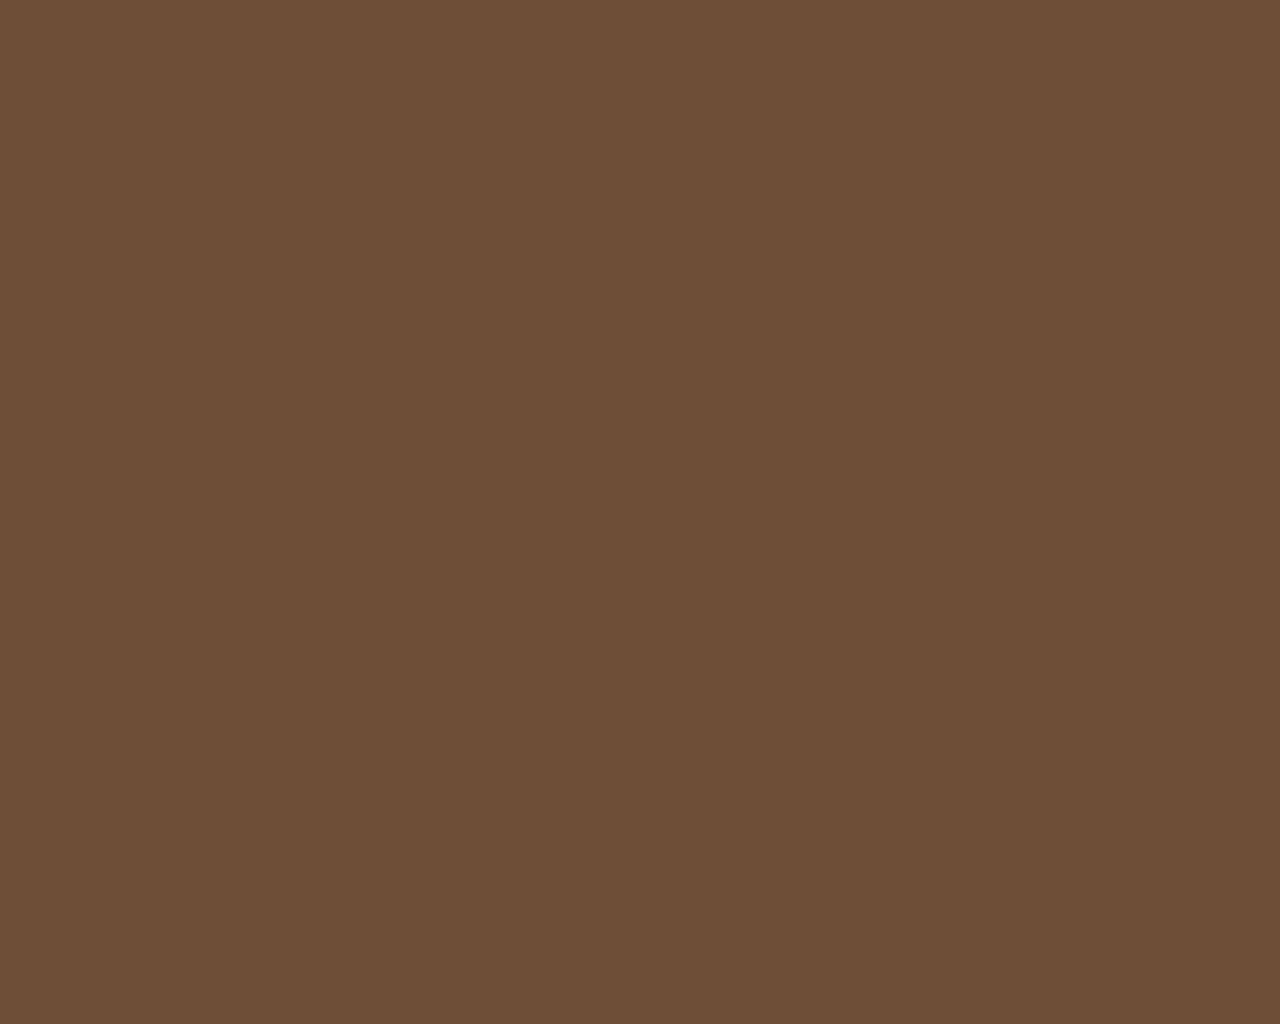 1280x1024 Tuscan Brown Solid Color Background